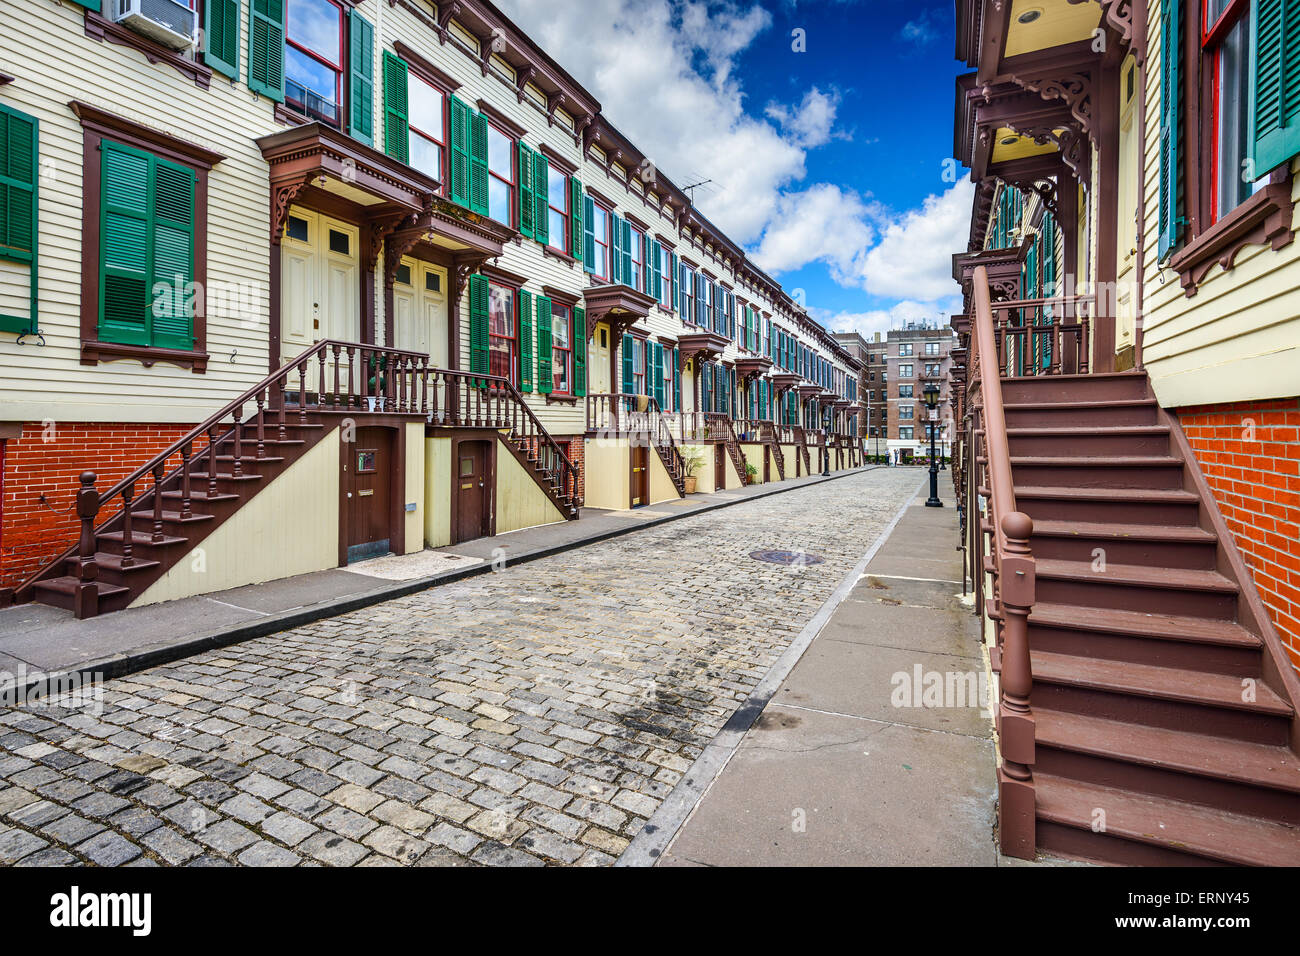 New York City, USA at townhouses in the Jumel Terrace Historic District. - Stock Image